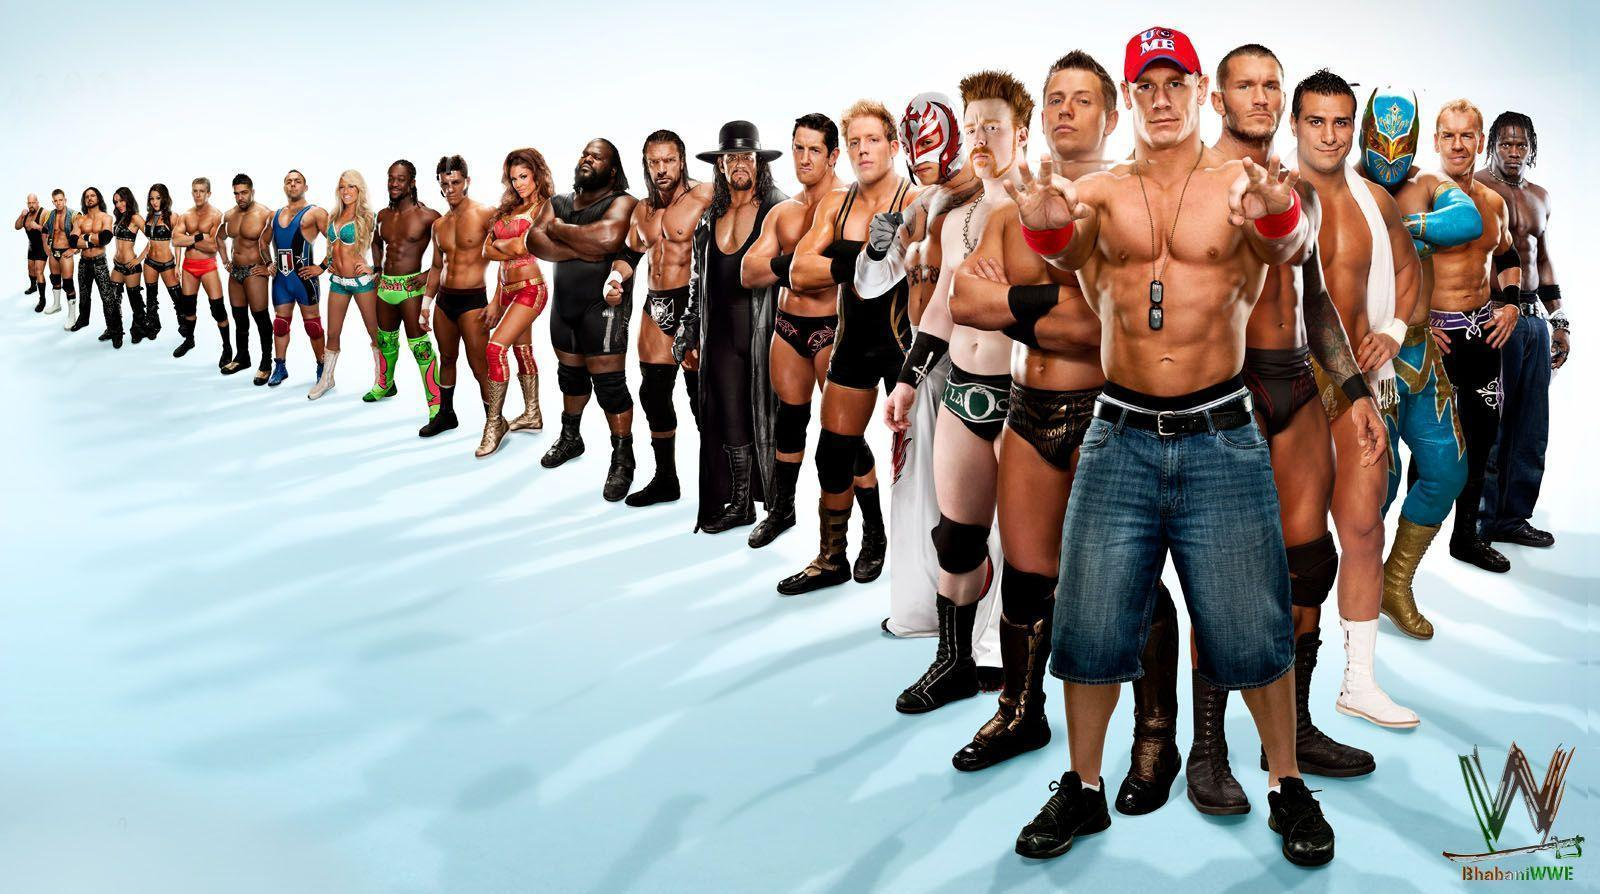 WWE Superstars Wallpaper - WWE Superstars, WWE Wallpapers, WWE .